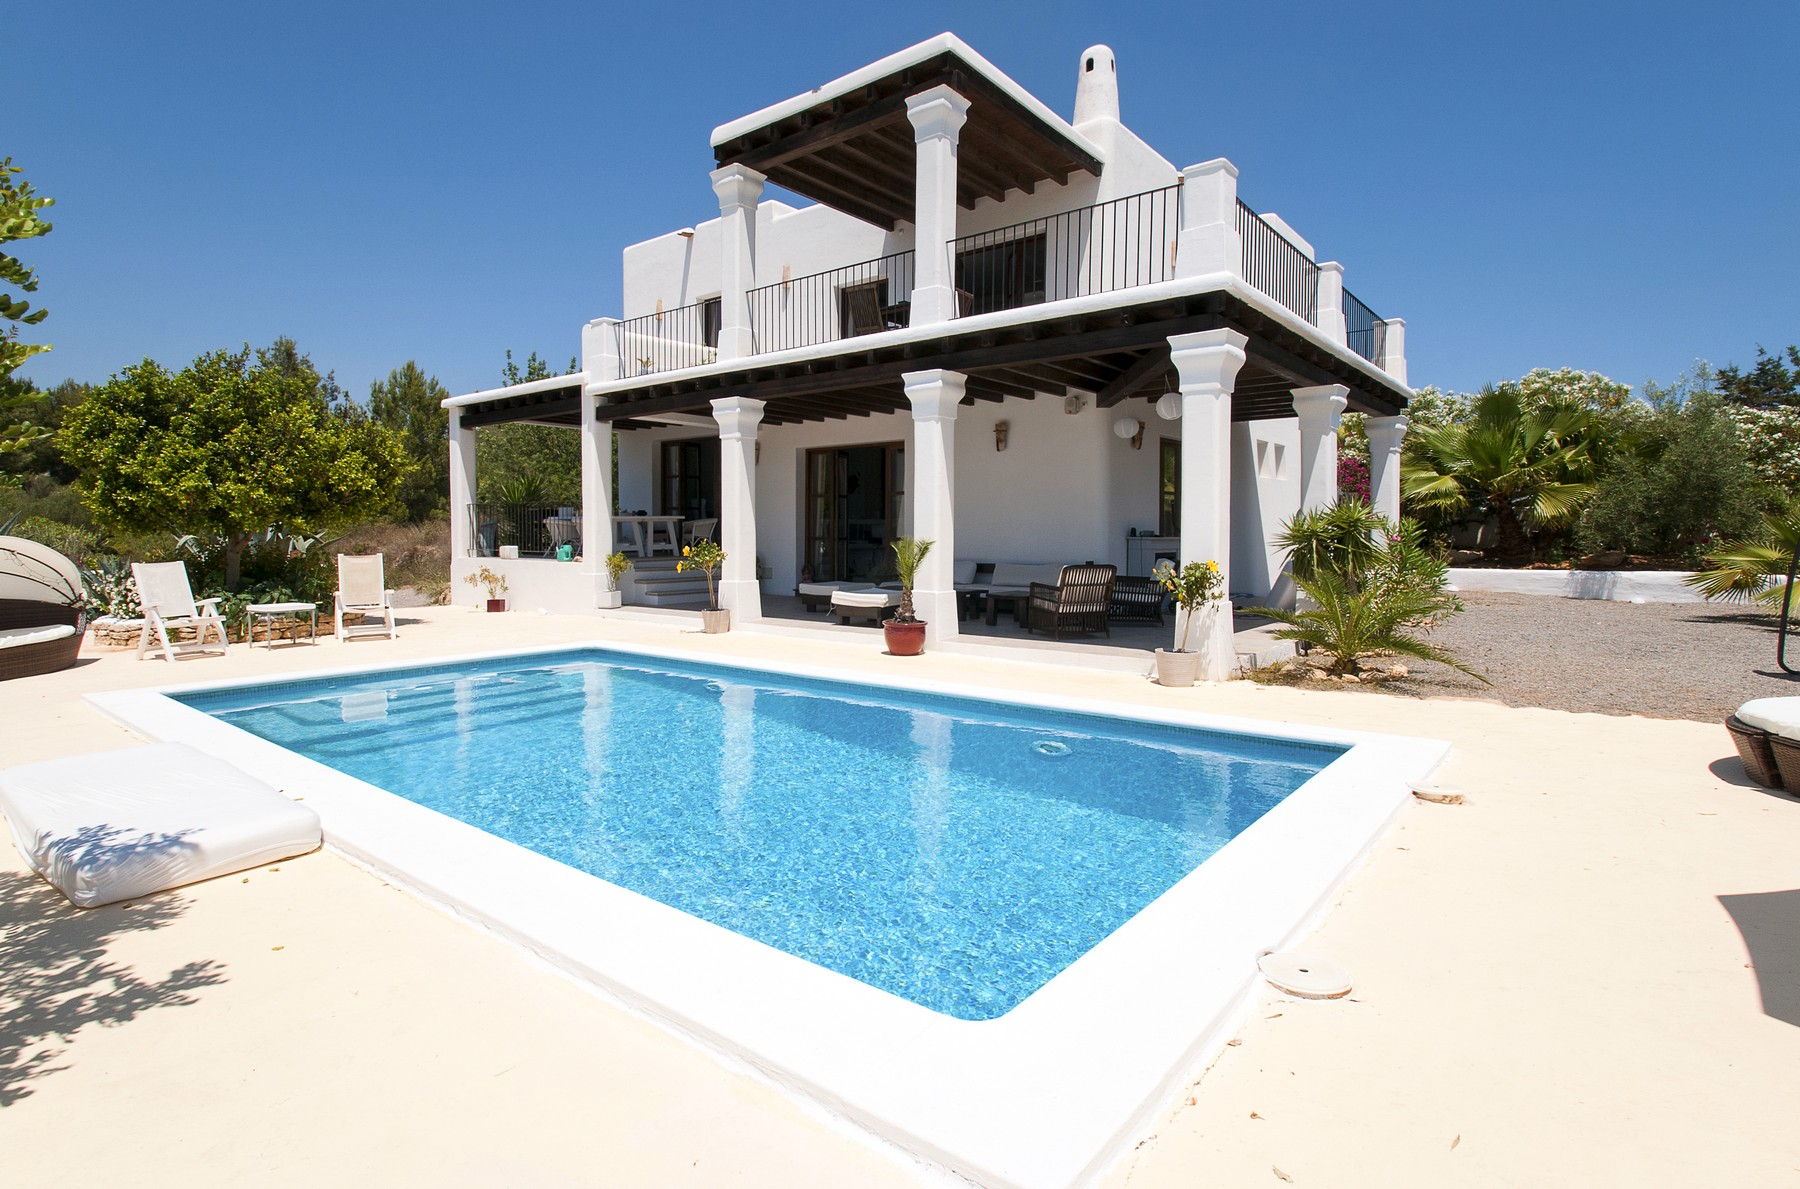 Casa Unifamiliar por un Venta en New Build South Orientated Rustic Villa In Ibiza Ibiza, Ibiza, 07840 España